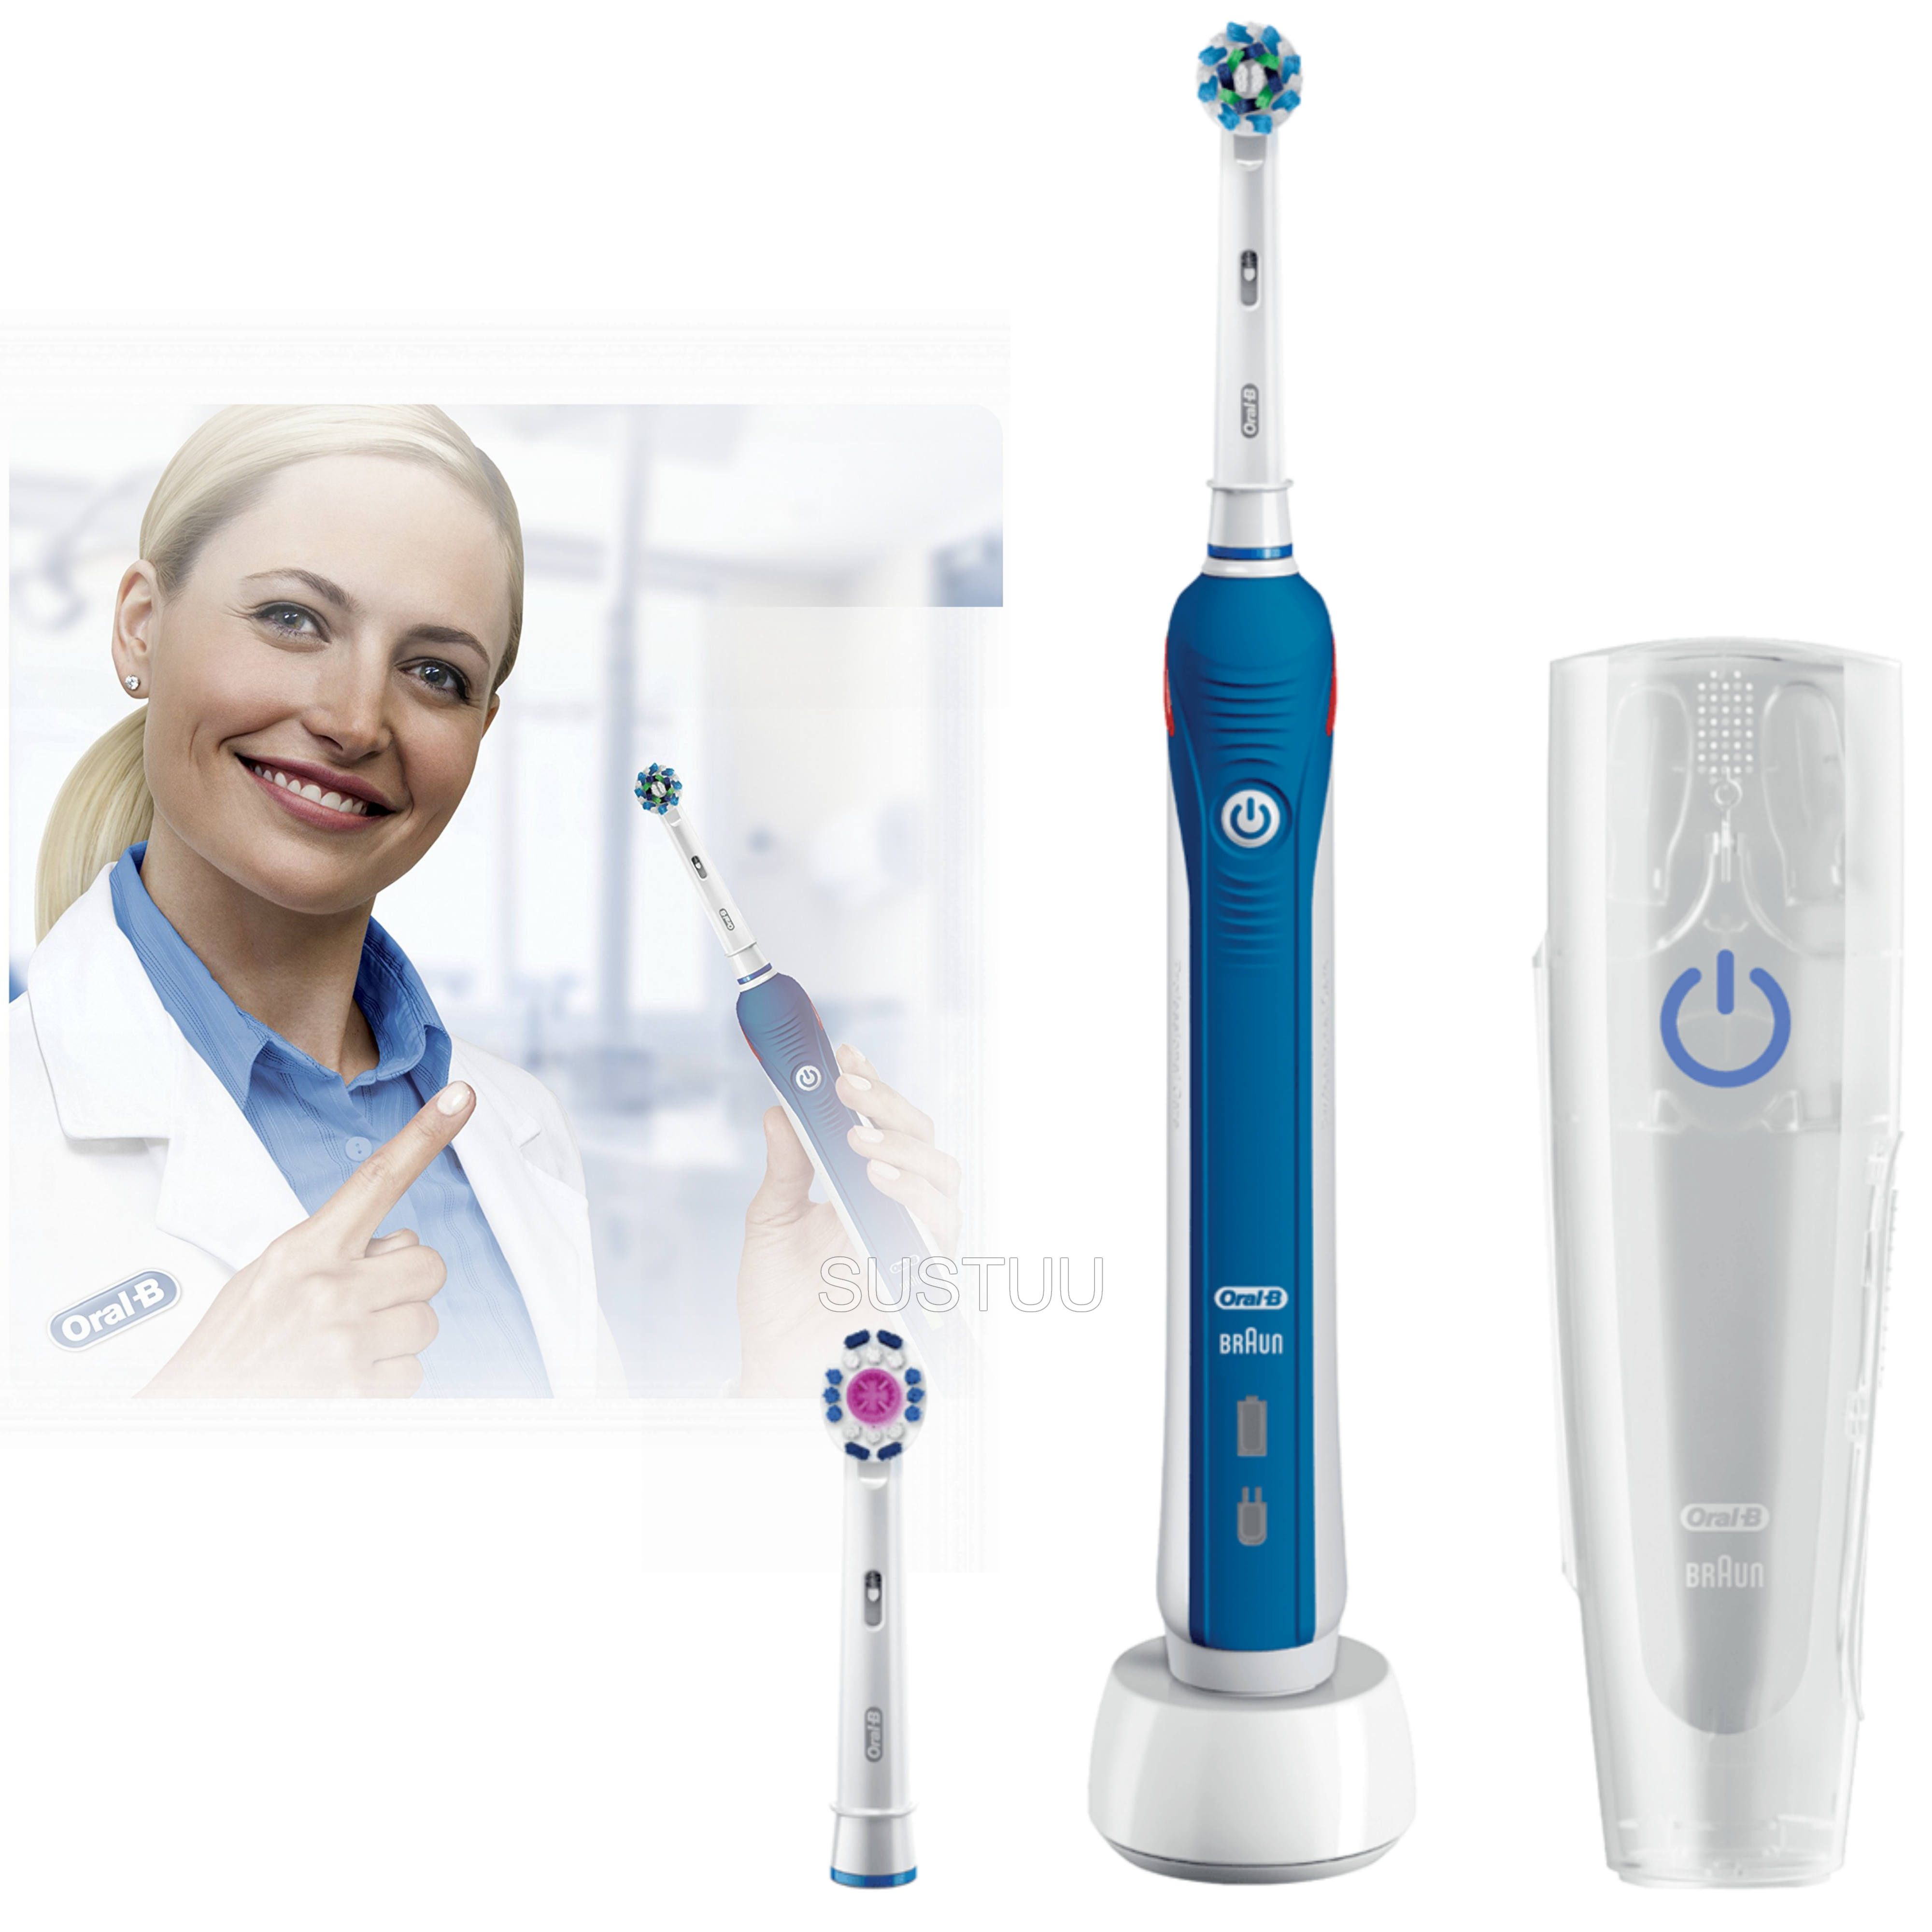 Oral-B Pro3 3000 Cross Action Electric Rechargeable Toothbrush | Pressure Control